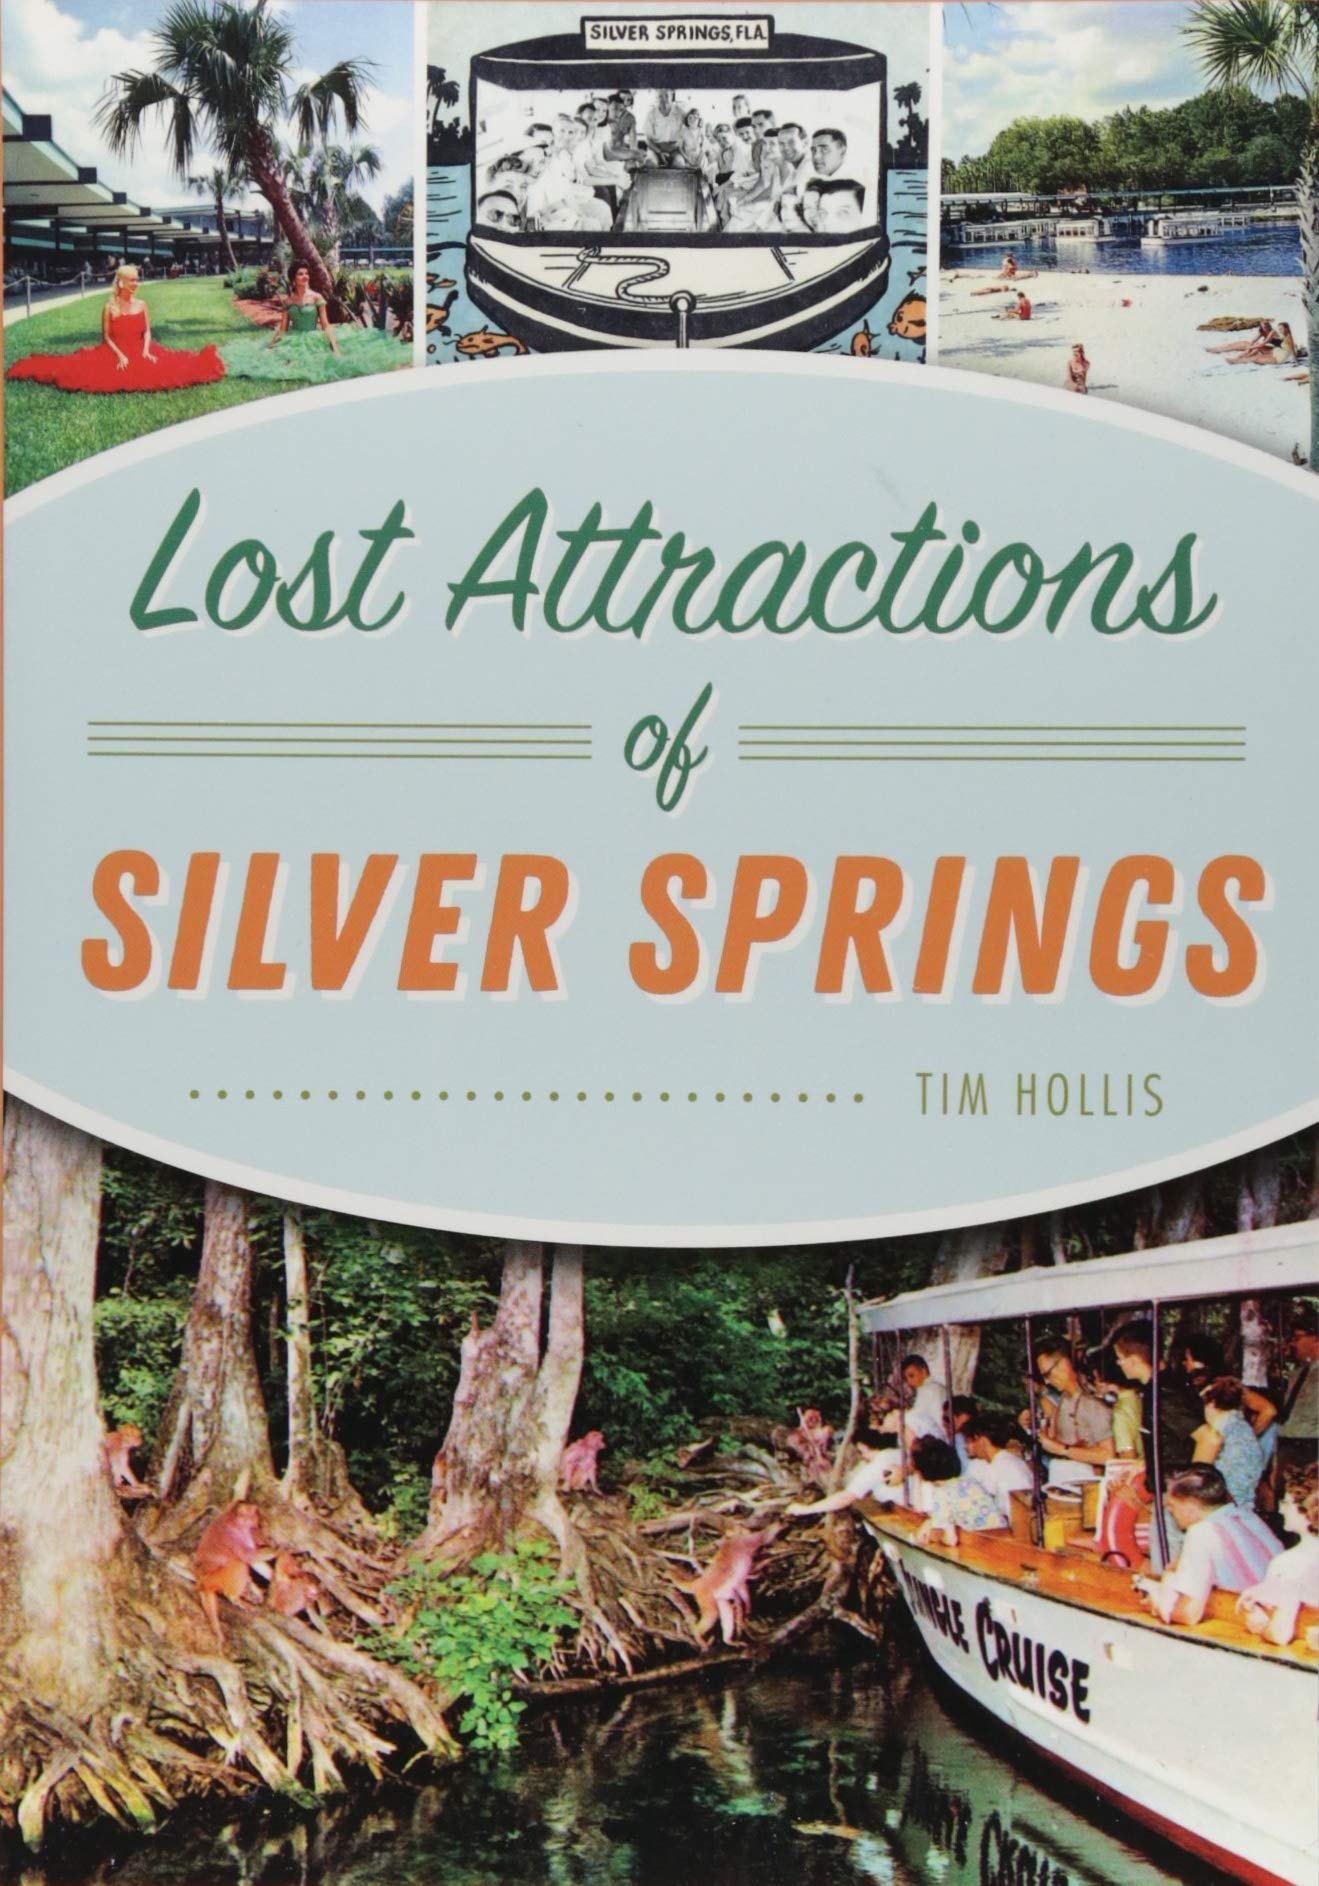 Lost Attractions of Silver Springs (Landmarks) Paperback – July 30, 2018